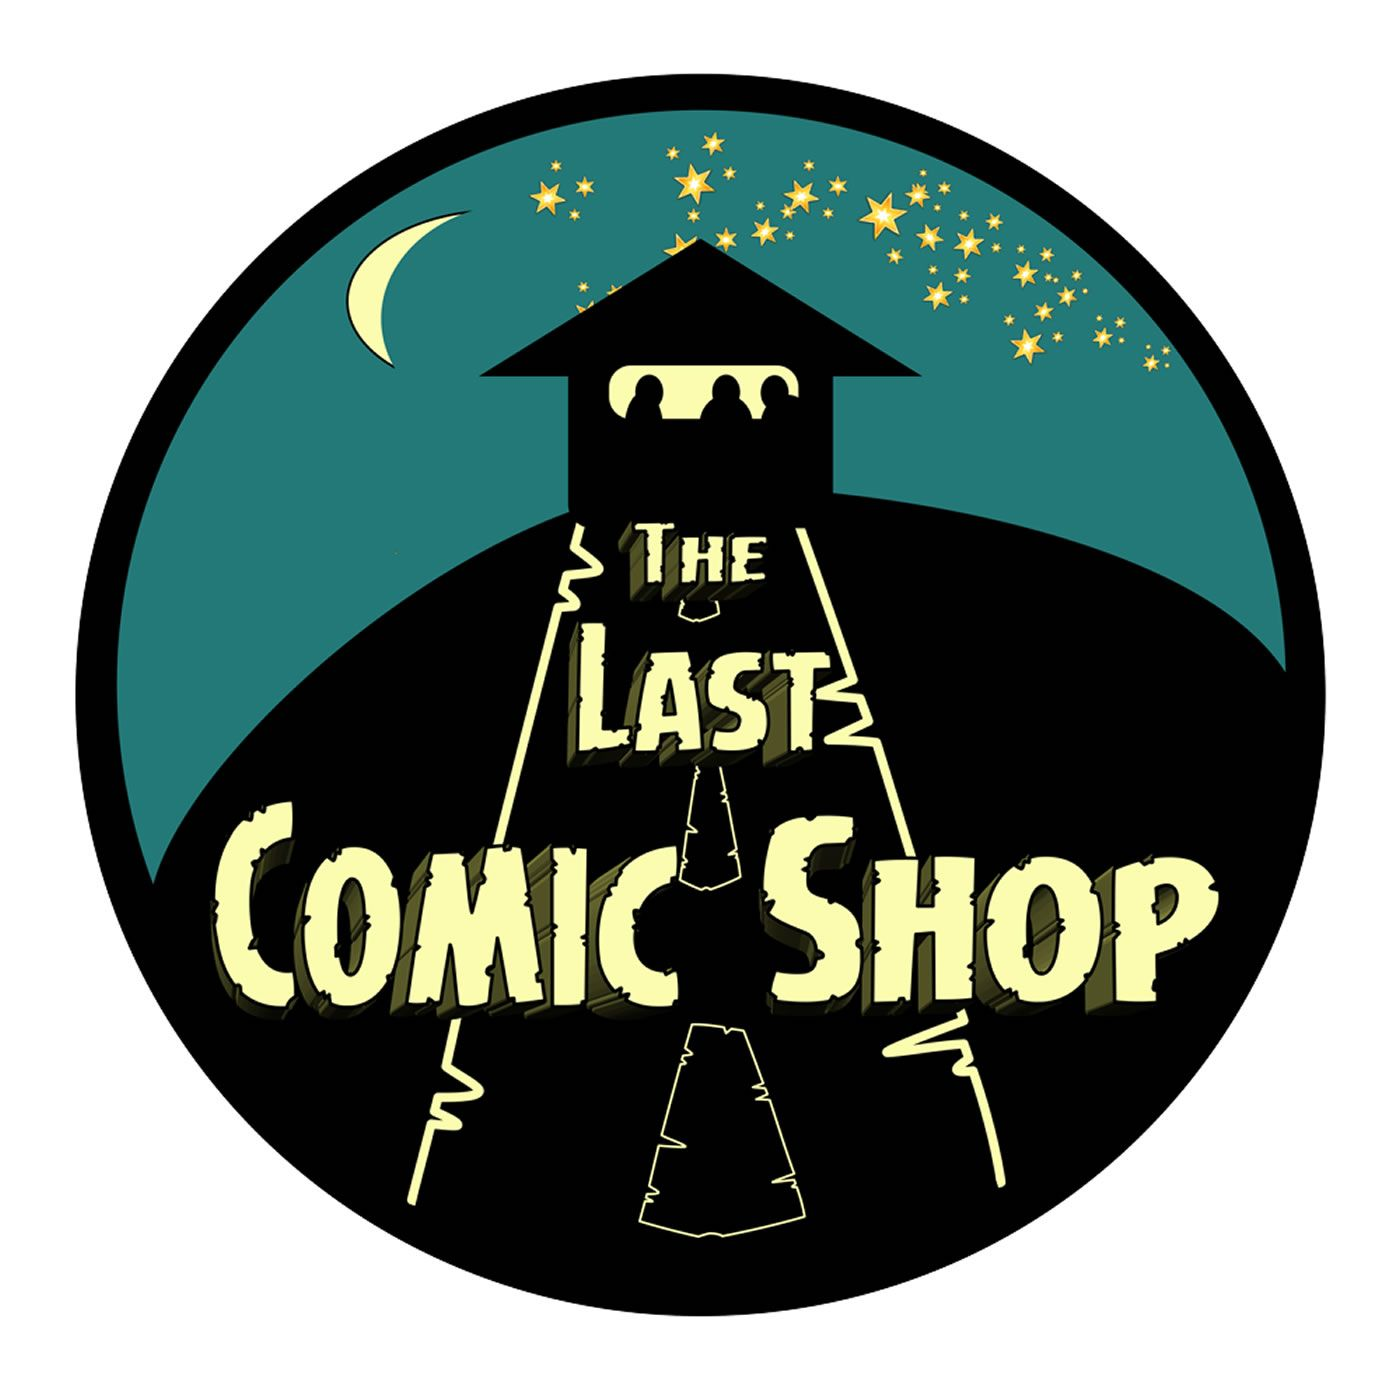 The Last Comic Shop